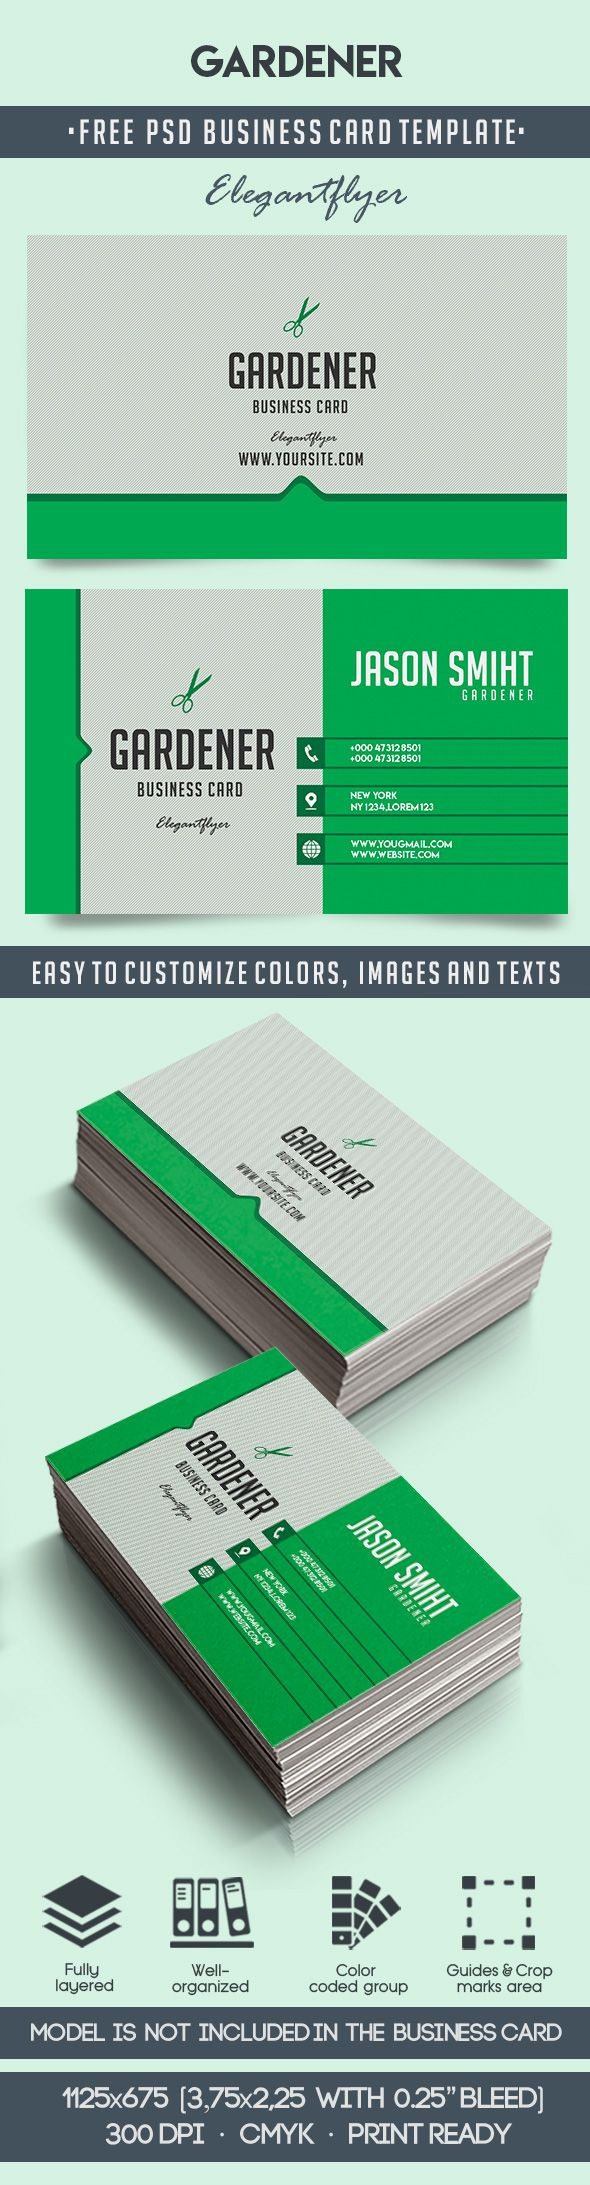 gardener  u2013 free business card templates psd  u2013 by elegantflyer